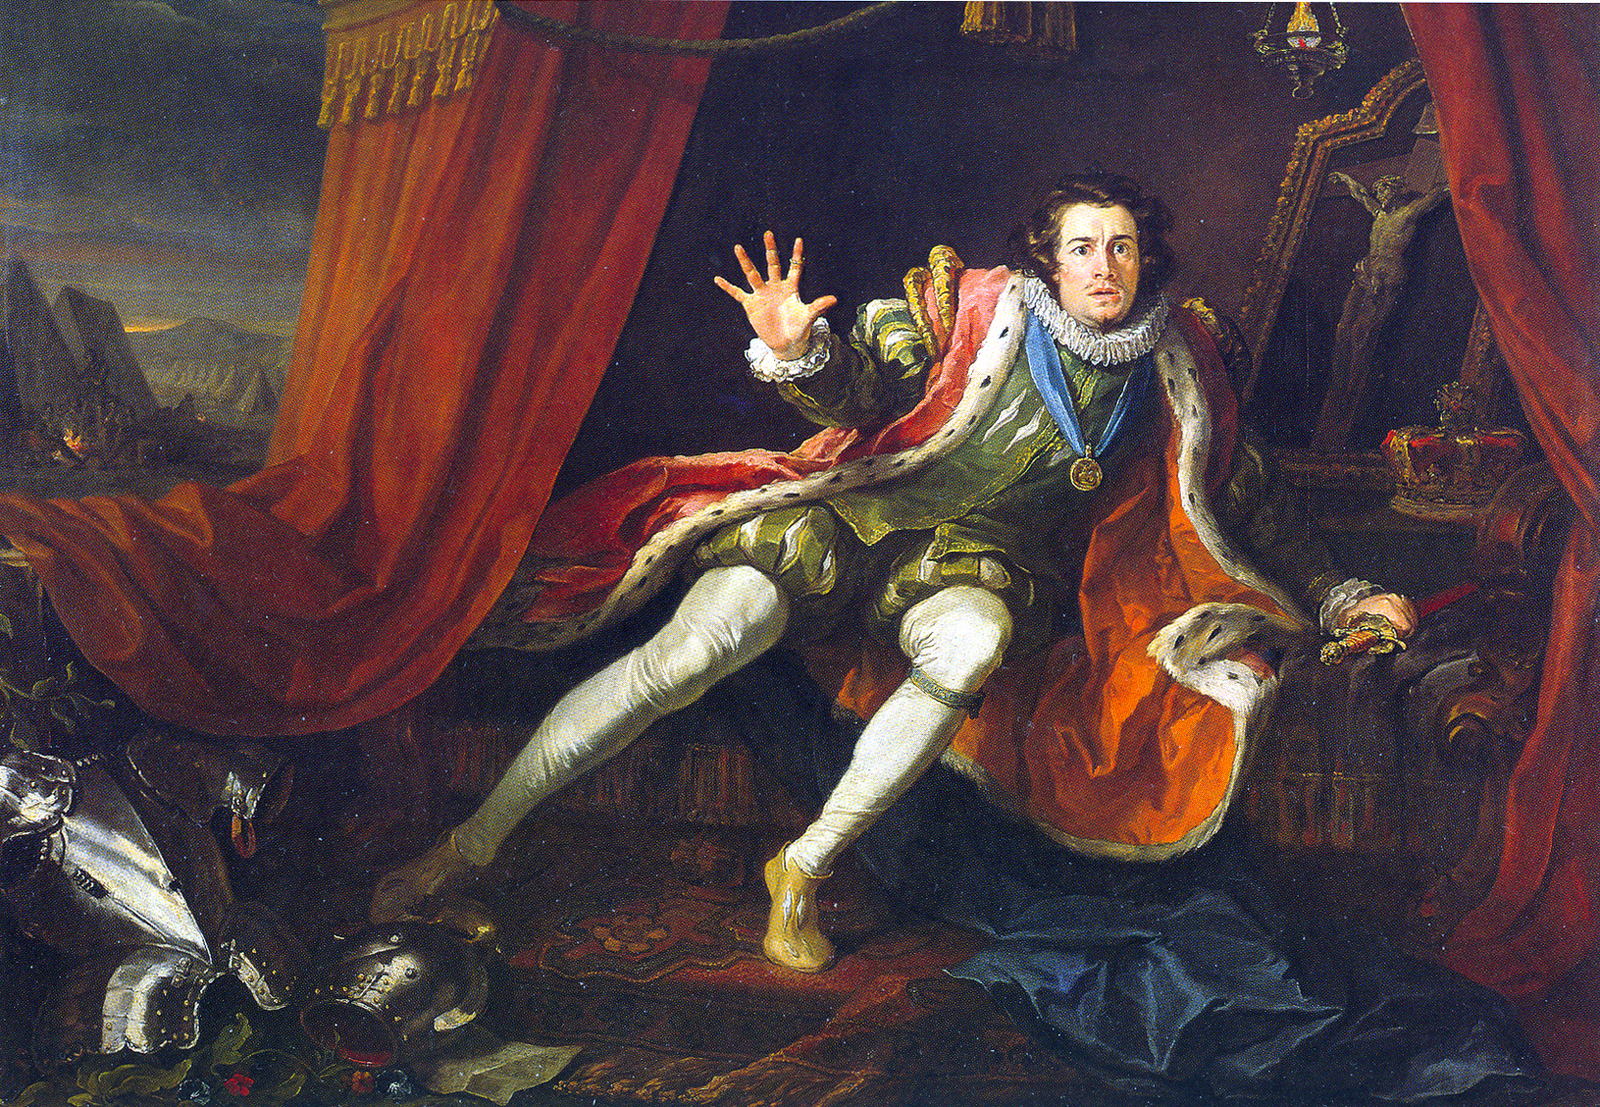 an analysis of the soliloquies of richard in richard iii